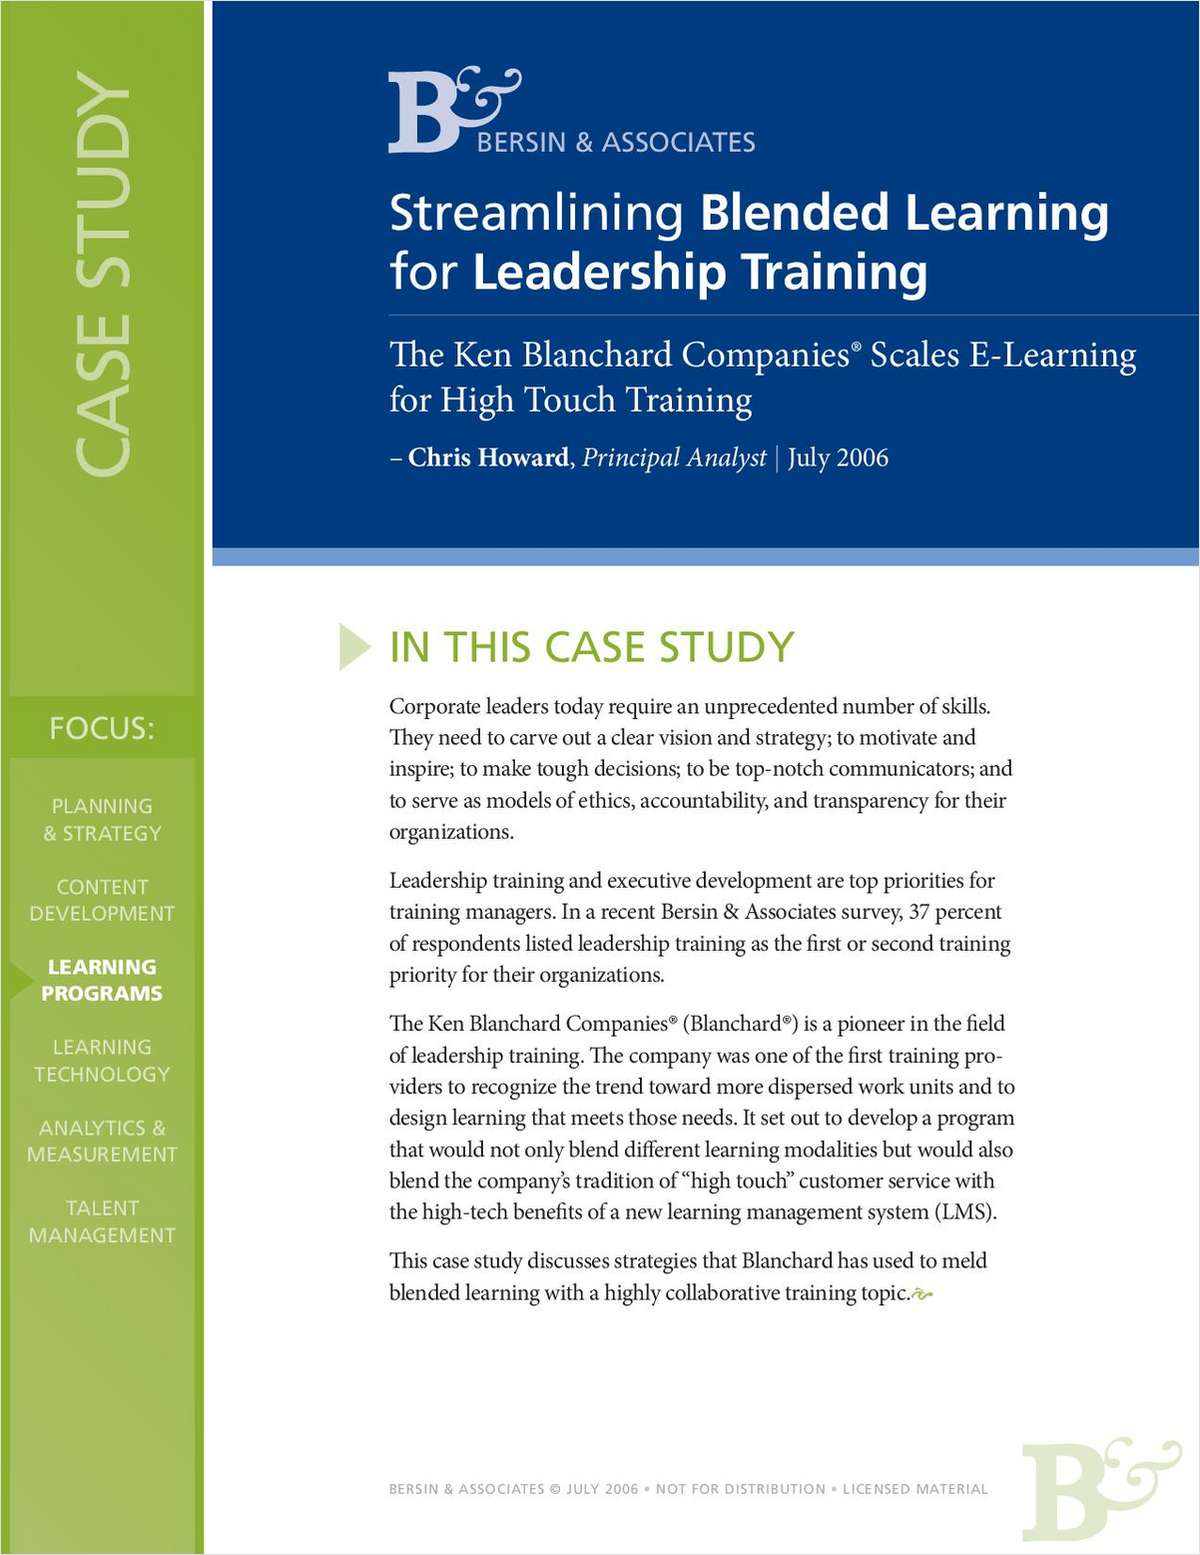 Streamlining Blended Learning for Leadership Training